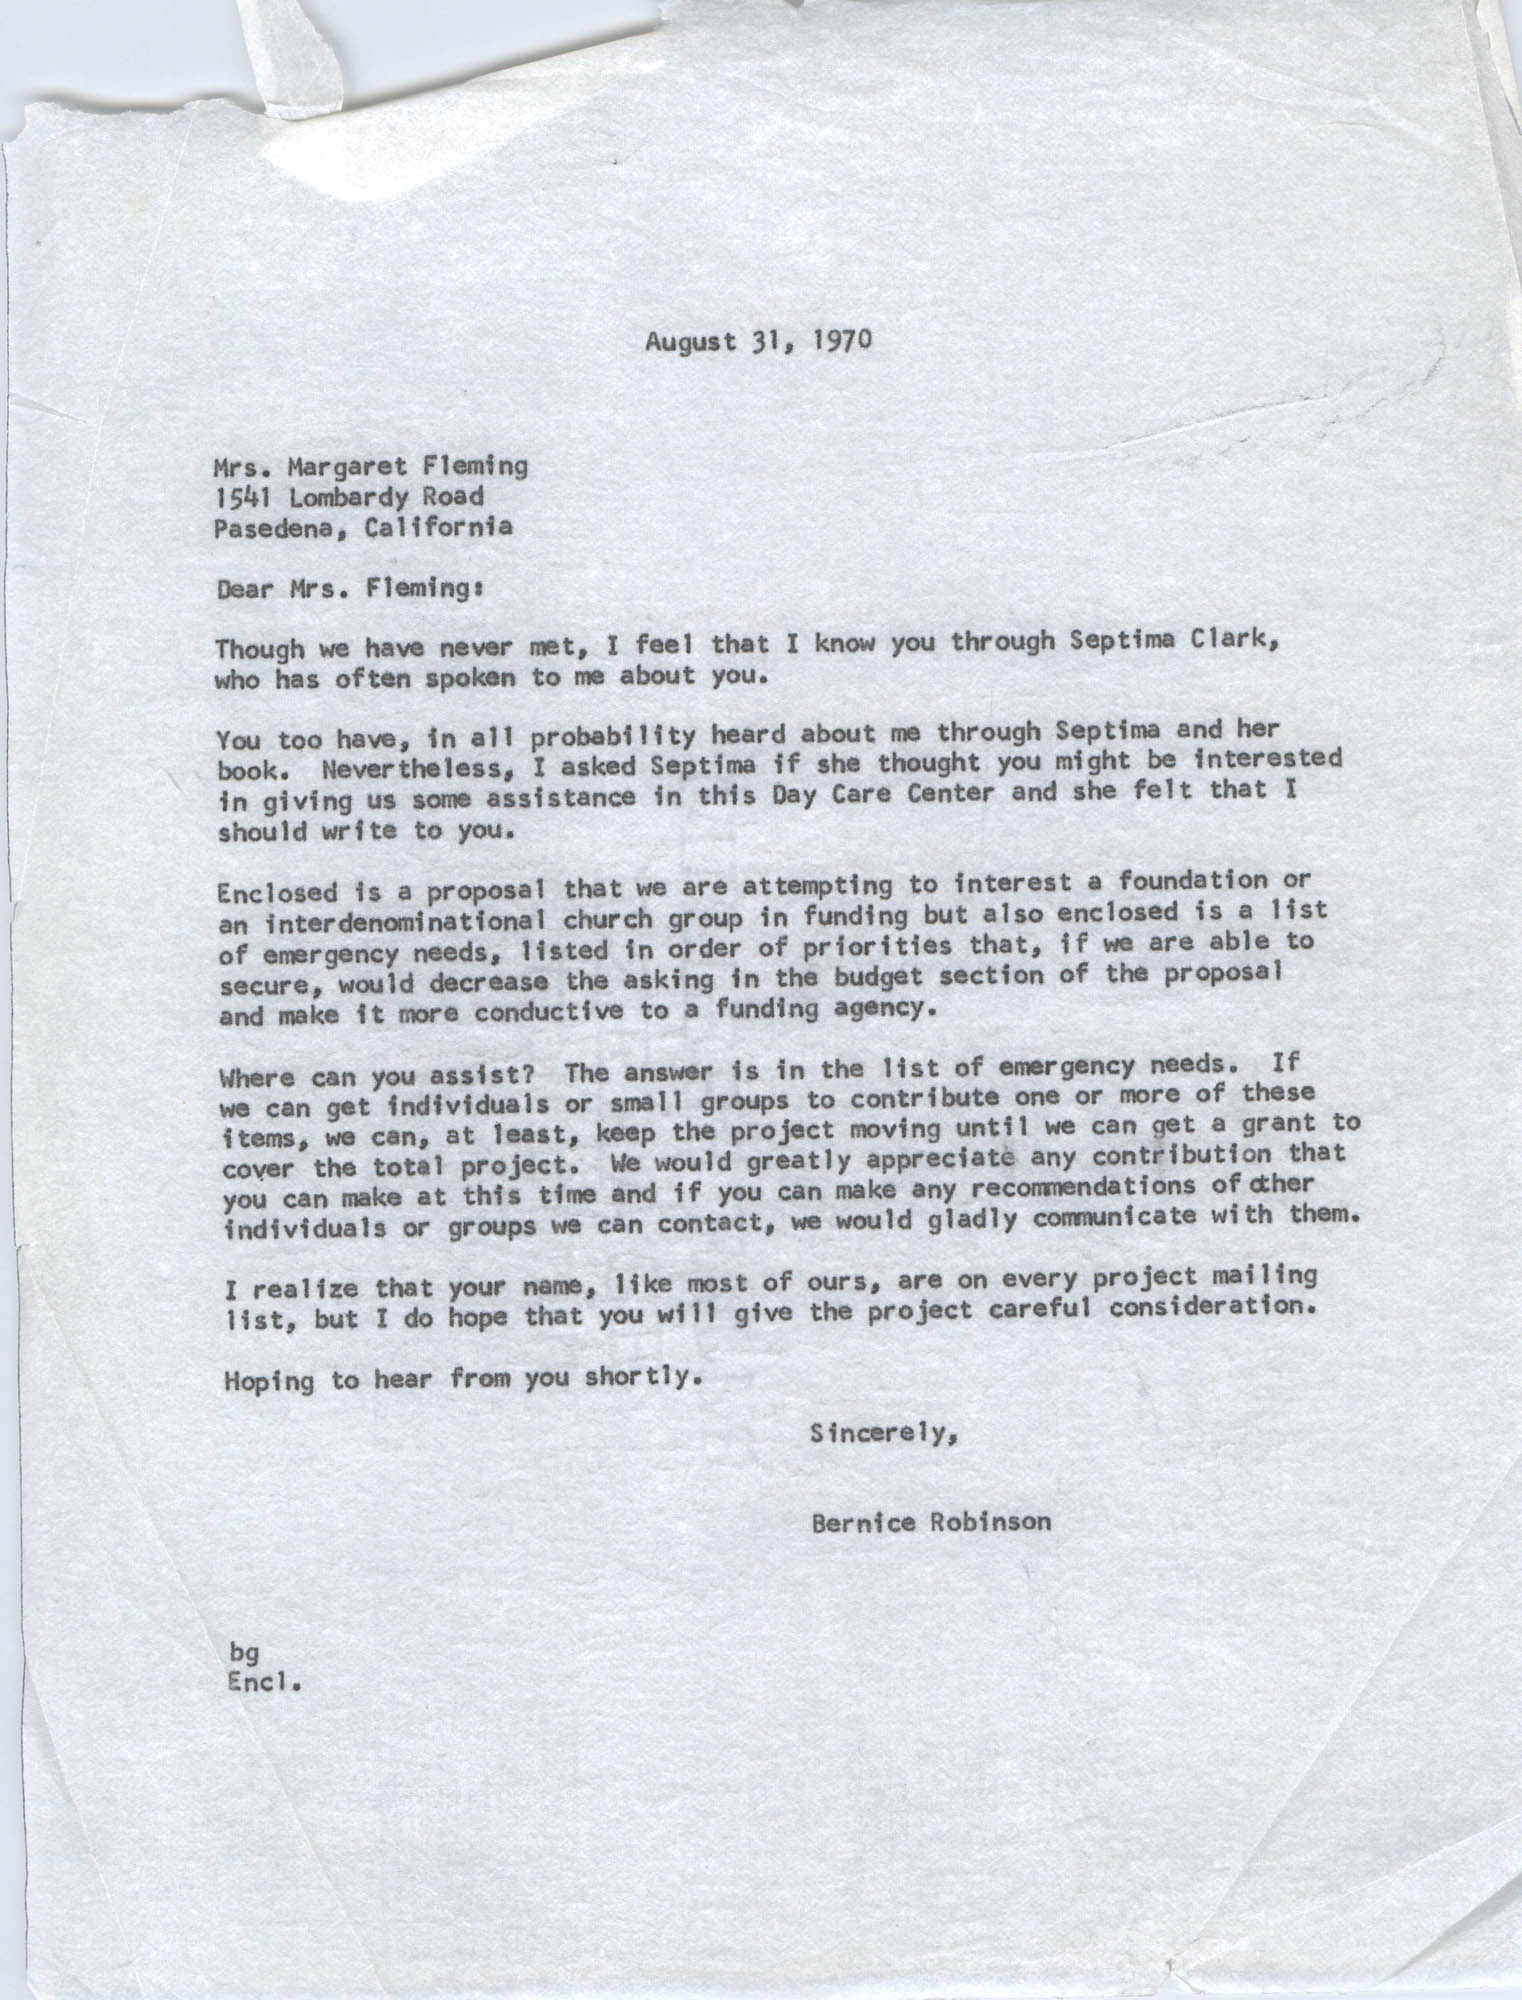 Letter from Bernice Robinson to Margaret Fleming, August 31, 1970